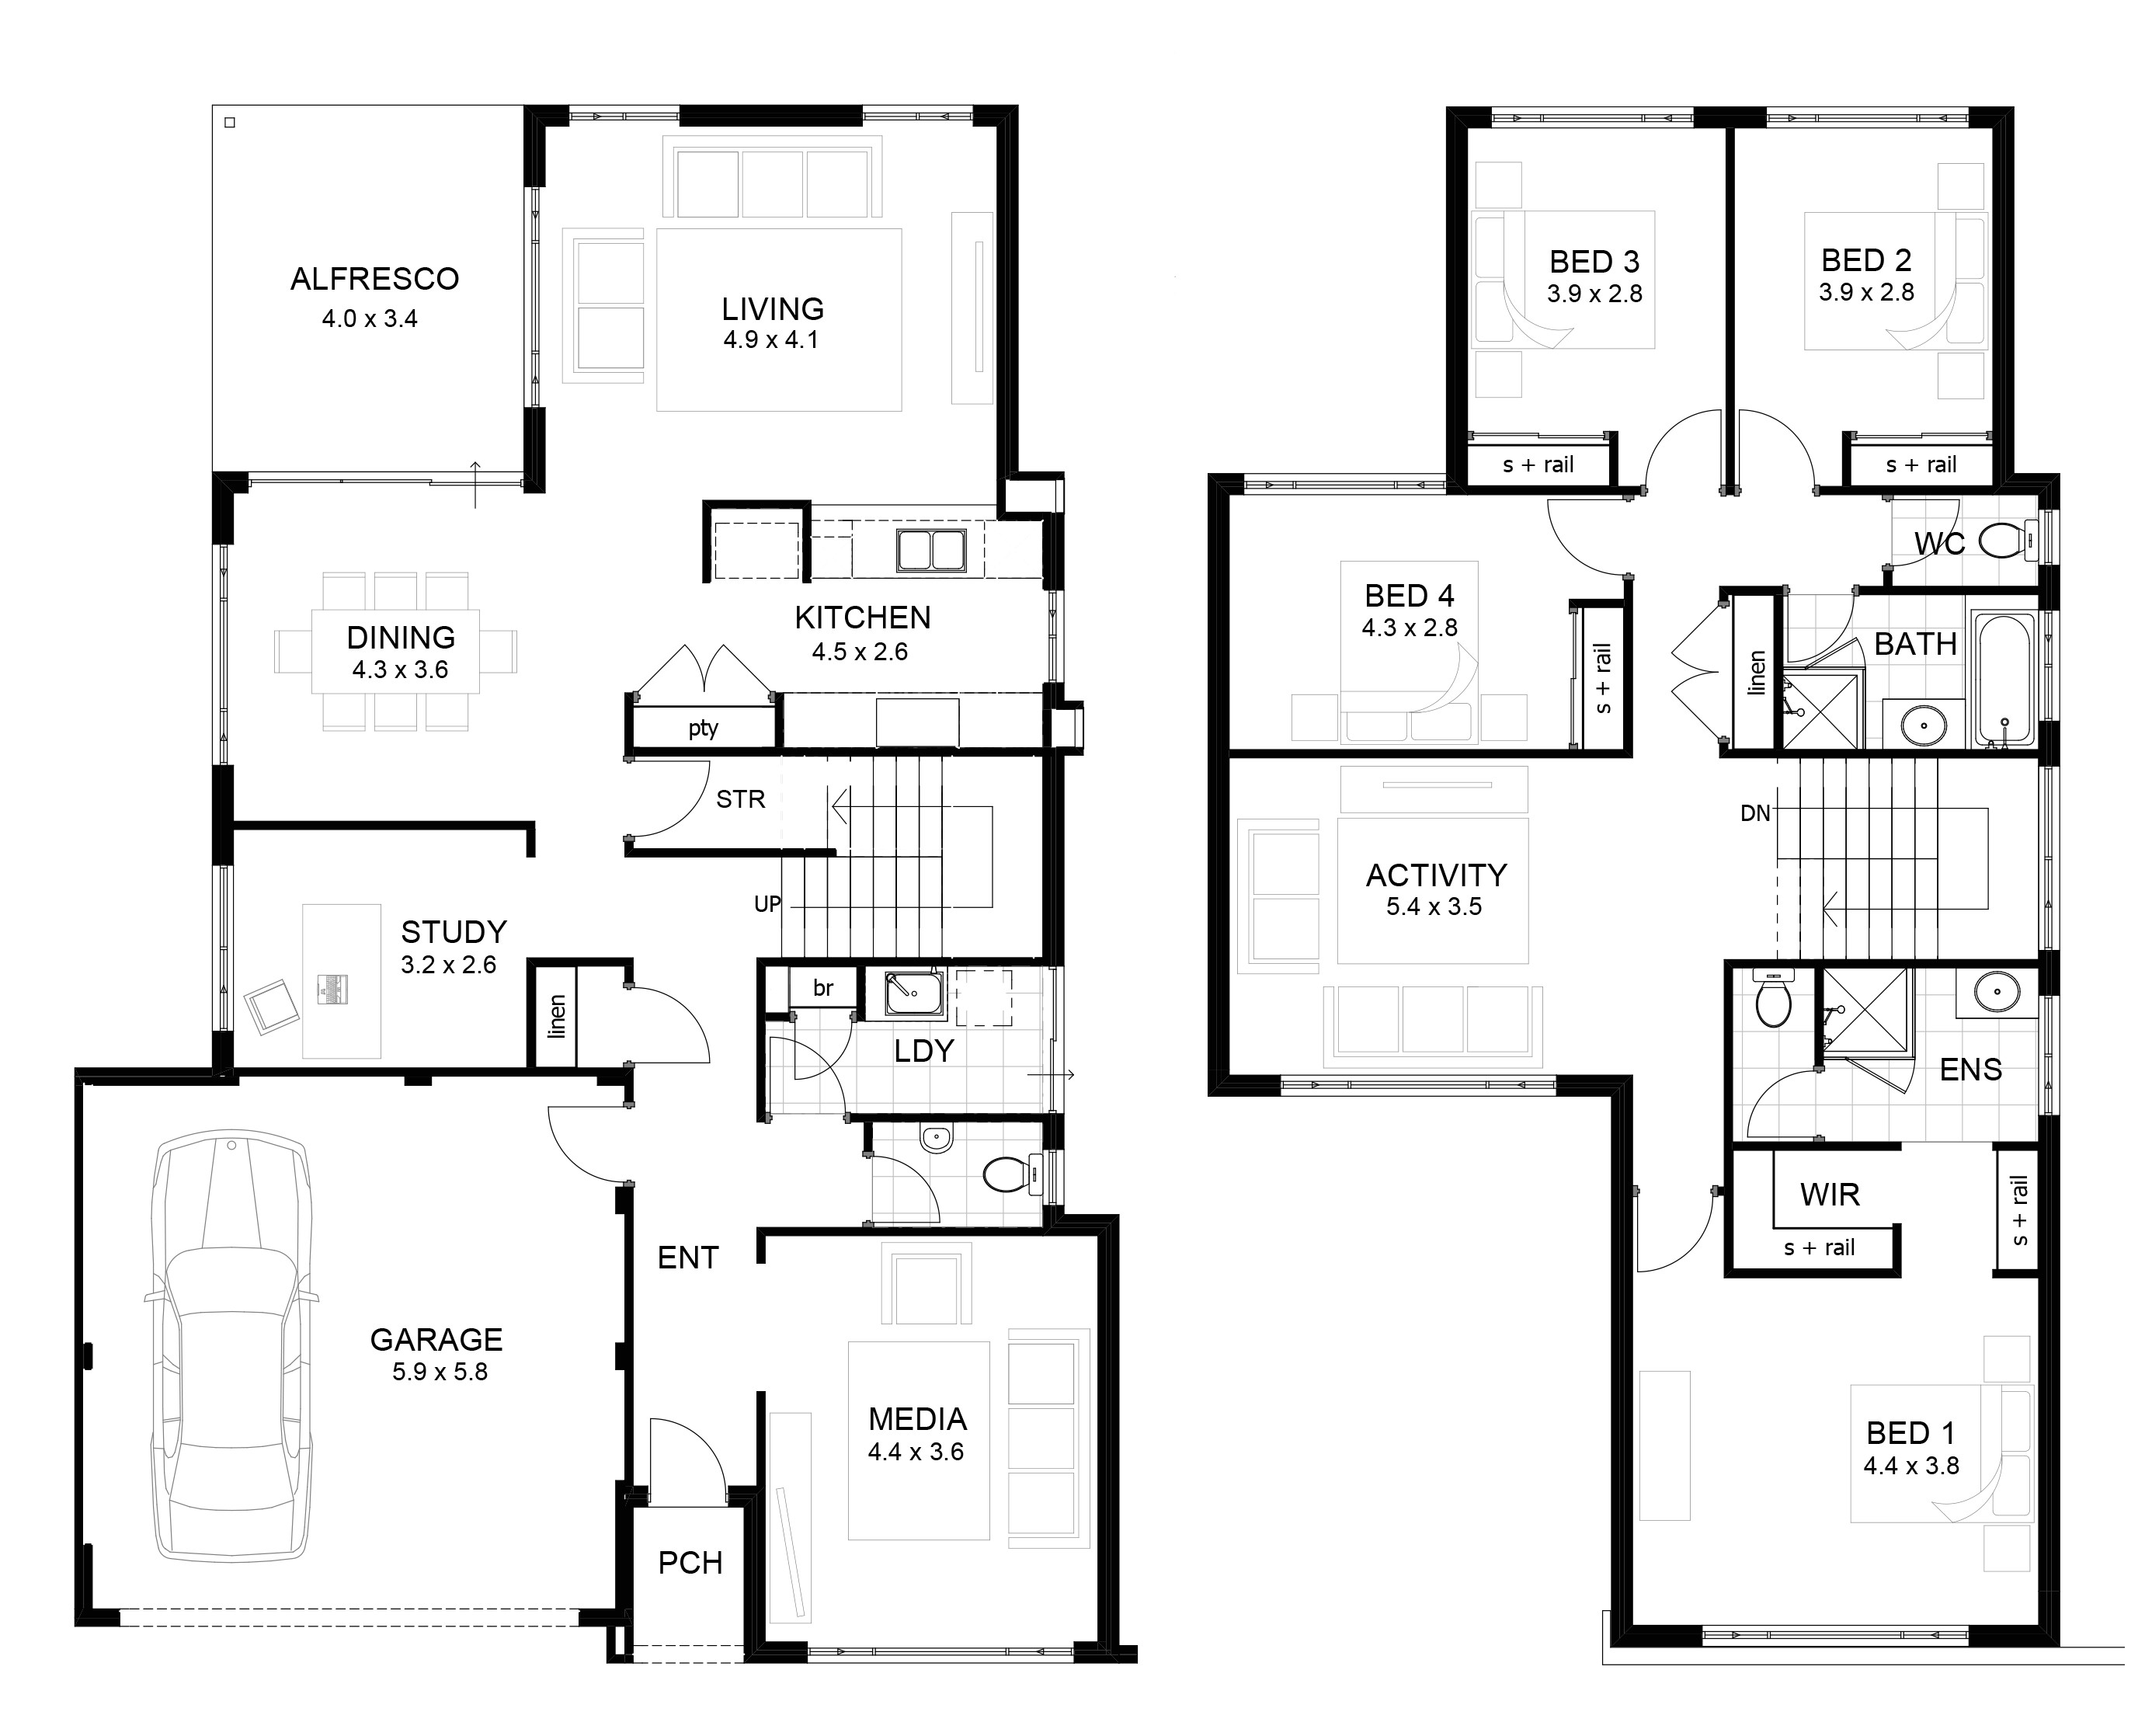 residential house floor plan with dimensions